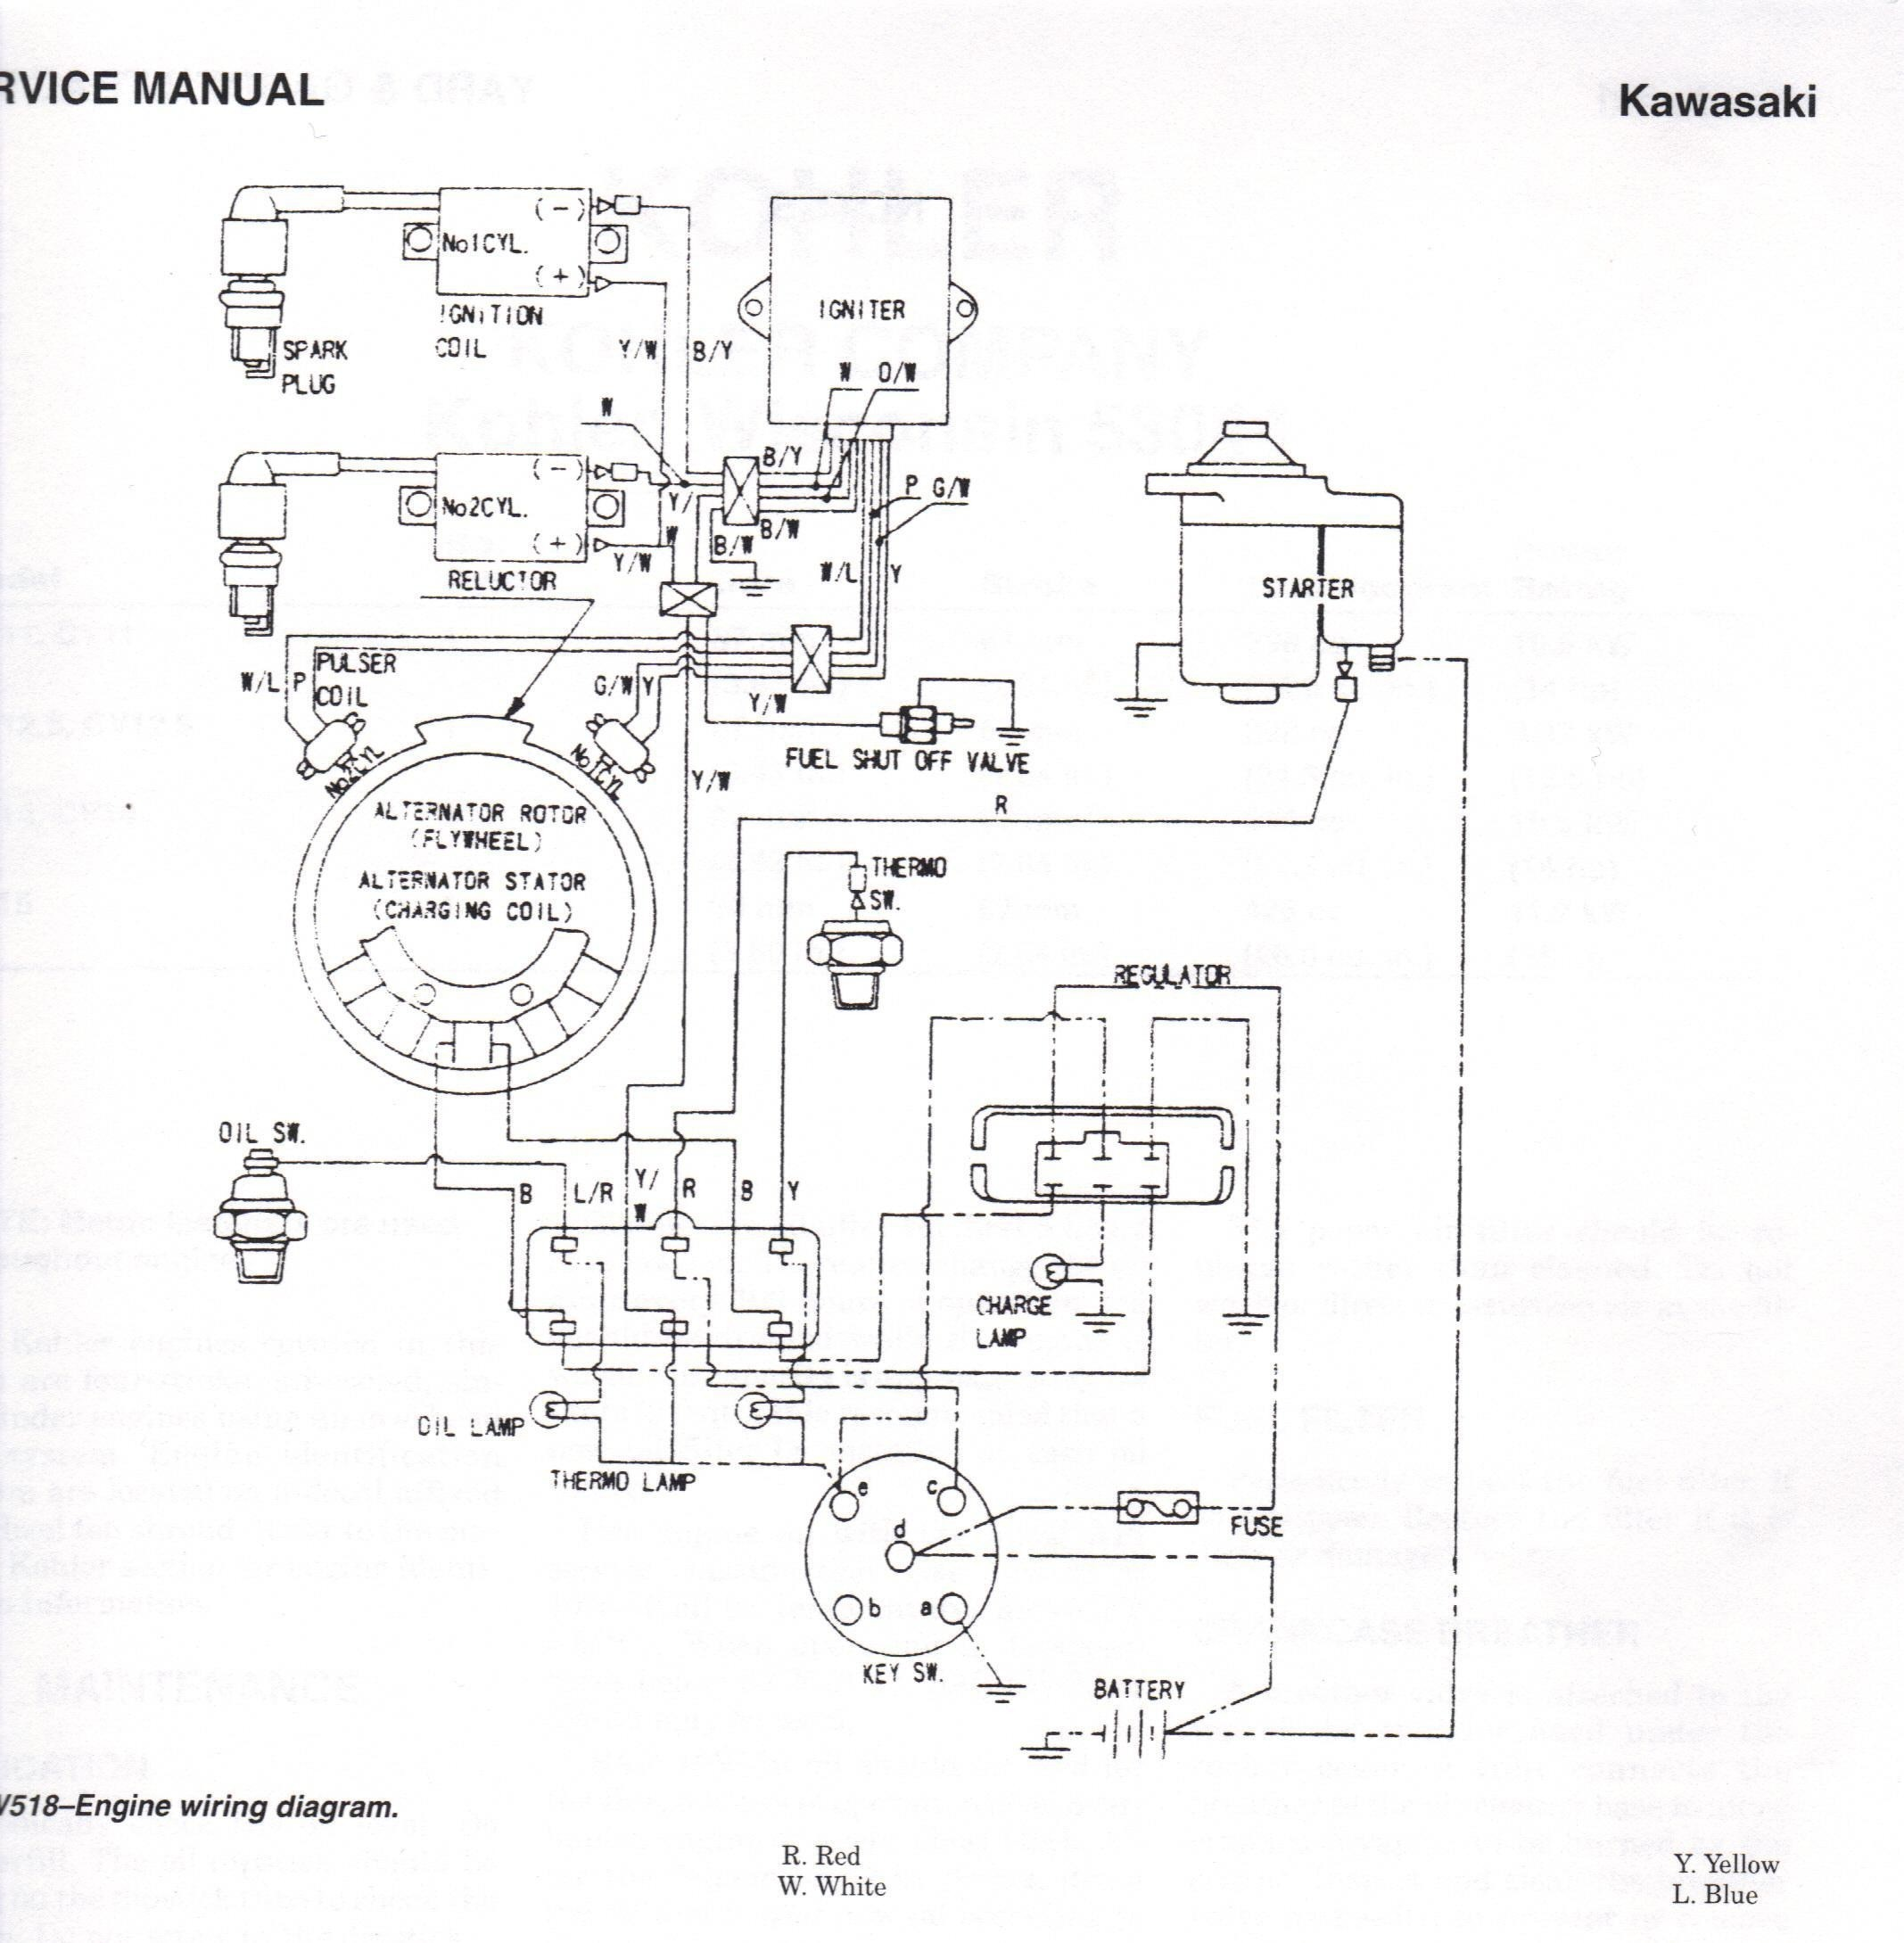 Peg Perego Gator Wiring Diagram Power Wheels Quad | Wiring Diagram on razor wiring diagram, yamaha wiring diagram, john deere 68 parts diagram, polaris sportsman 400 wiring diagram, john deere l100 parts diagram, halo wiring diagram, graco wiring diagram, sony wiring diagram, toshiba wiring diagram, polaris ranger 500 wiring diagram, polaris sportsman 500 wiring diagram, john deere wiring diagram, panasonic wiring diagram, polaris sportsman 800 wiring diagram, john deere gator parts diagram, john deere 180 parts diagram, john deere 2040 parts diagram, orbit wiring diagram, polaris 800 atv wiring diagram, power wheels wiring diagram,